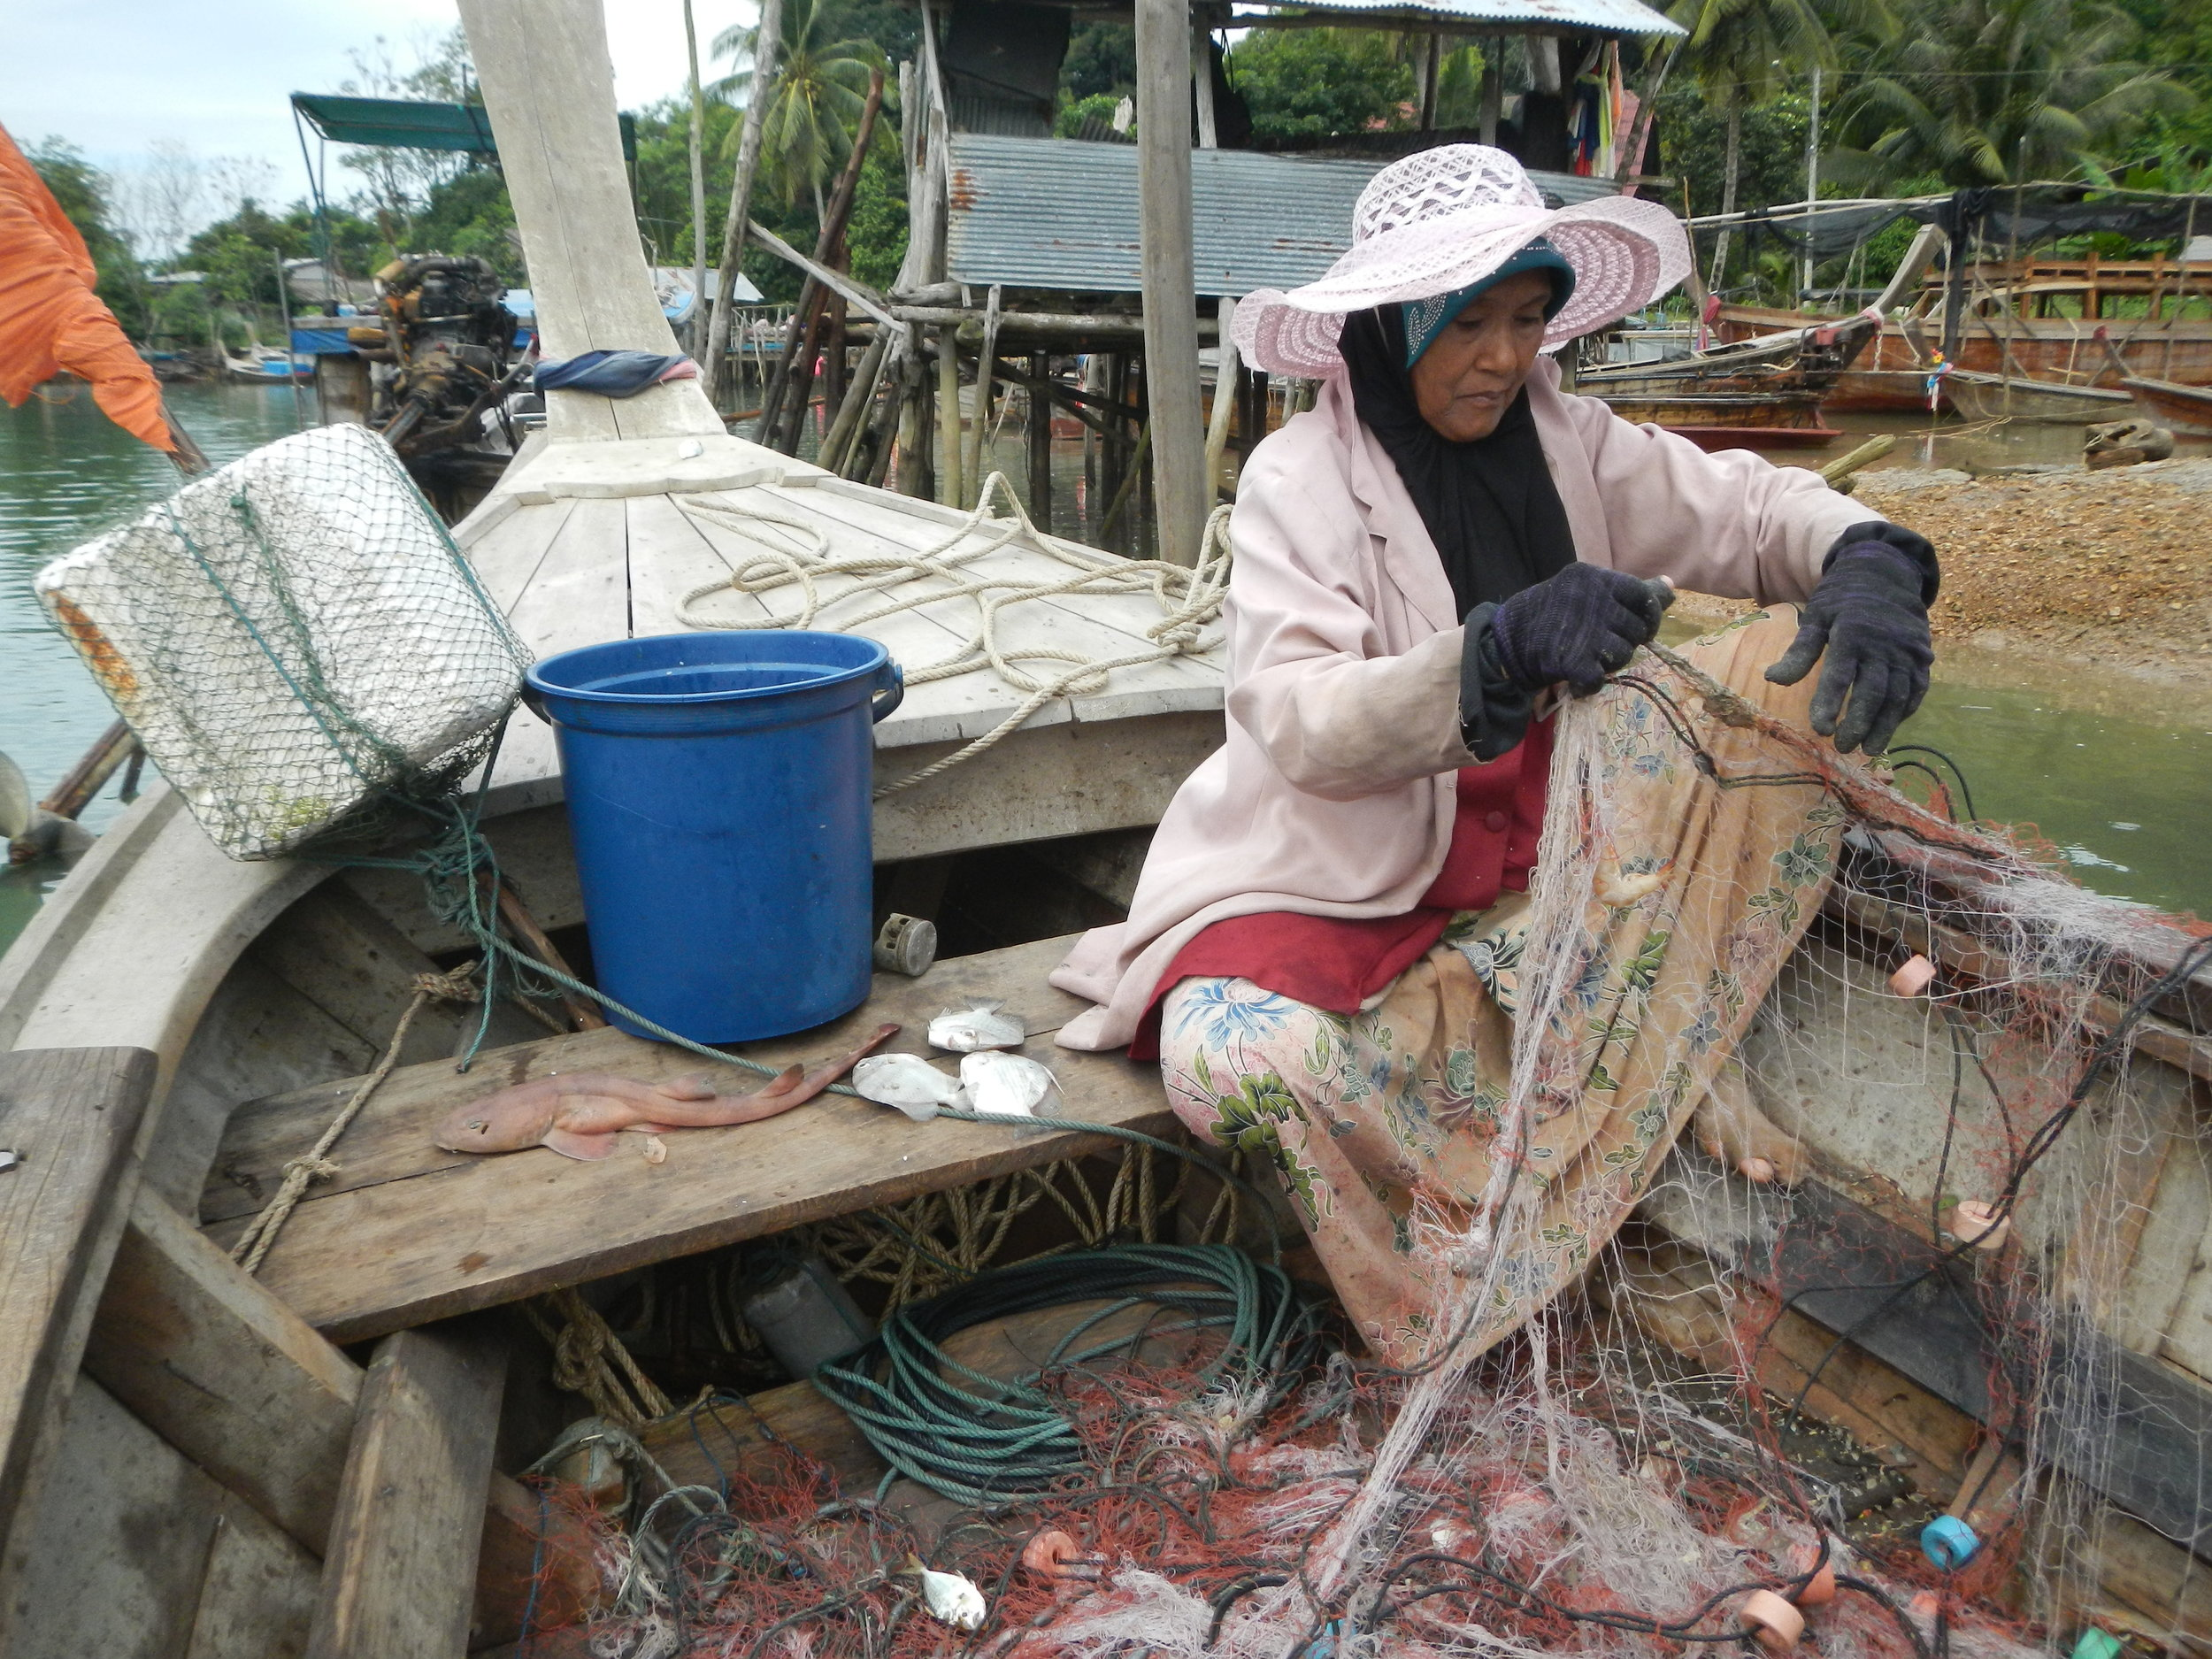 In addition to seahorses, both commercial and small-scale fishers caught numerous other non-target species. In this photo, a female fisher using a gillnet for shrimp also caught numerous small fishes and even a small shark